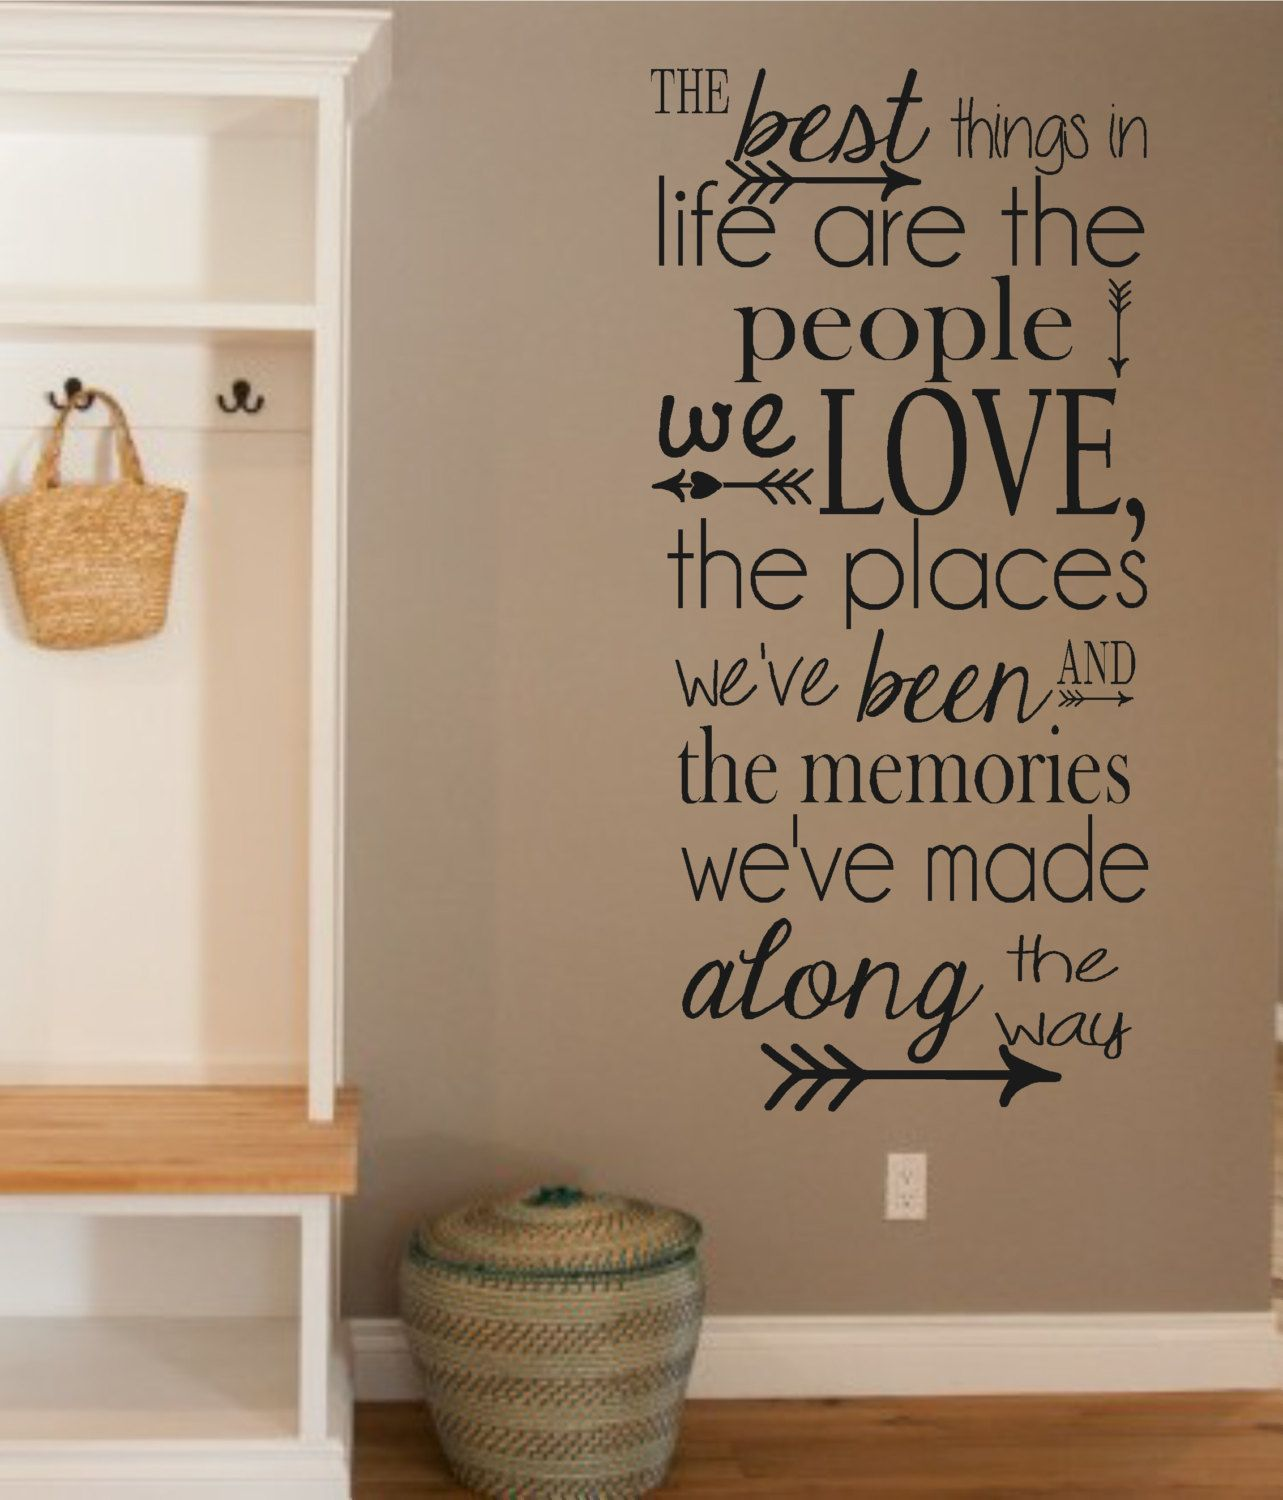 Vinyl wall decal the best things in life people love memories vinyl wall decal the best things in life people love memories amipublicfo Choice Image